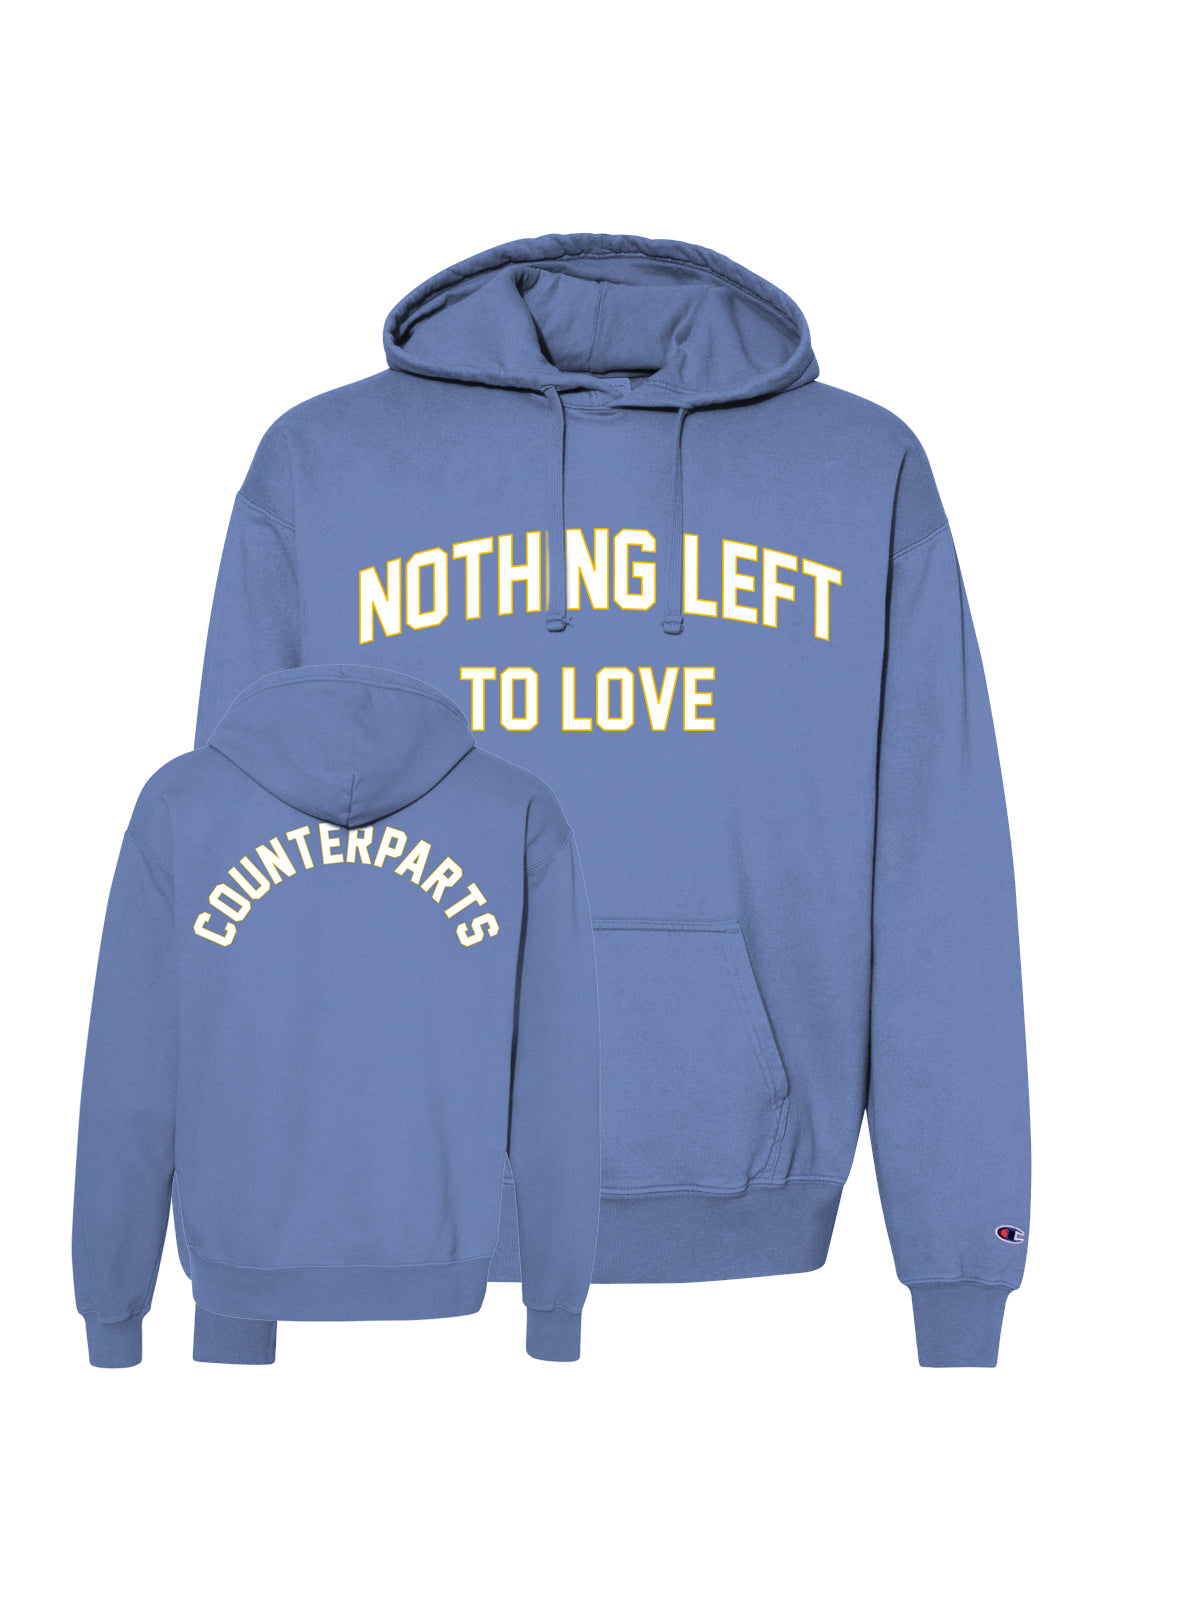 Counterparts - NL2L Garment Dyed Champion Hoodie (Saltwater) - SHPS FEBRUARY 28 - Merch Limited